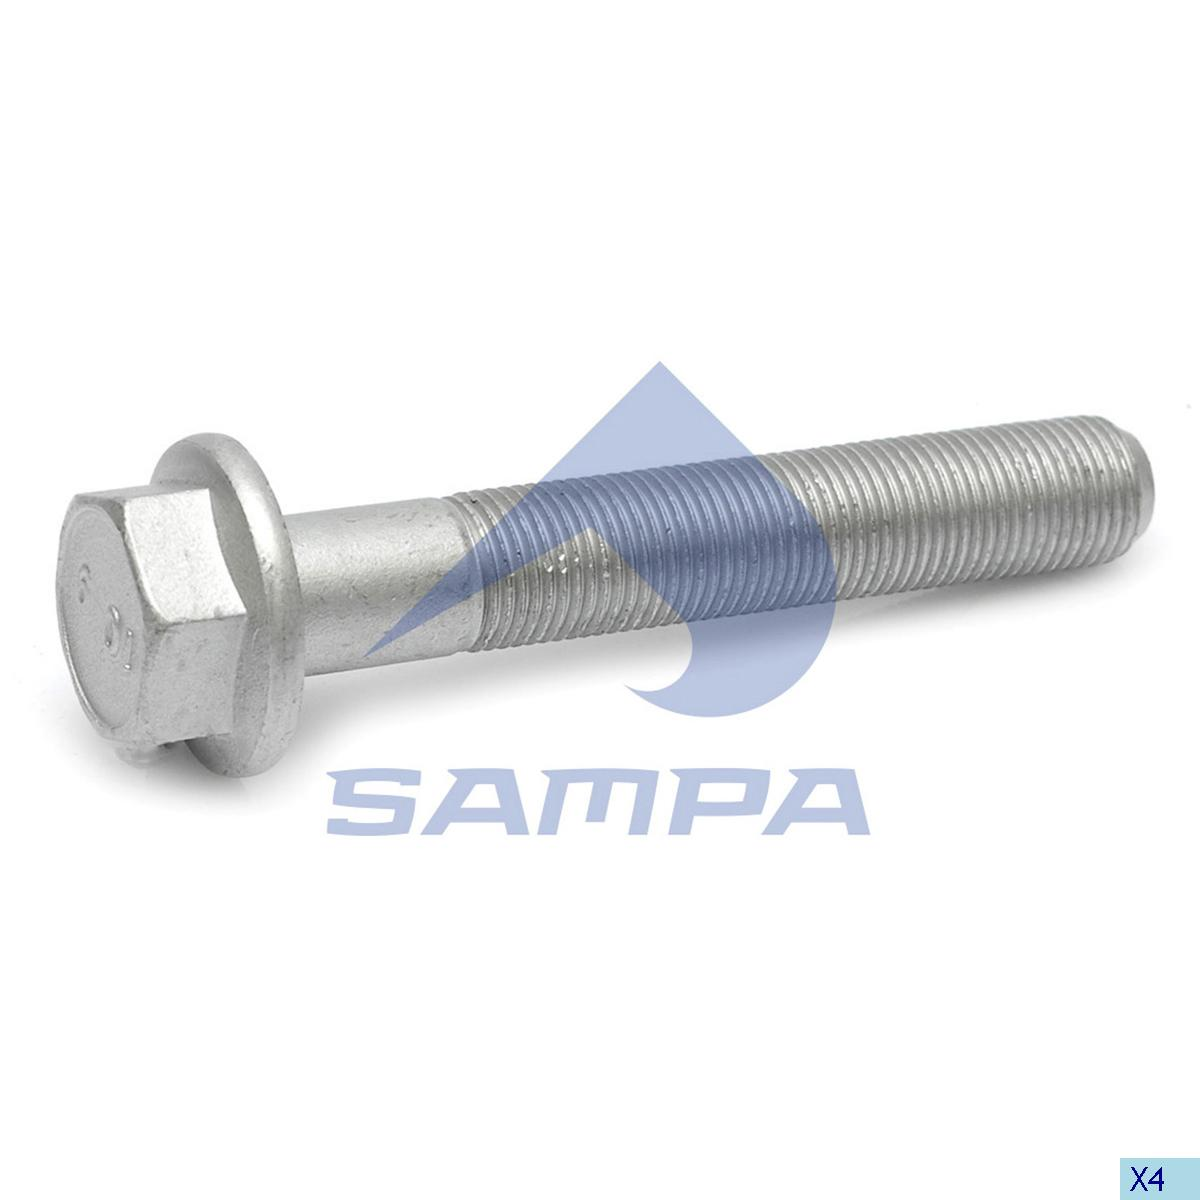 Screw, Axle Rod, Mercedes, Suspension